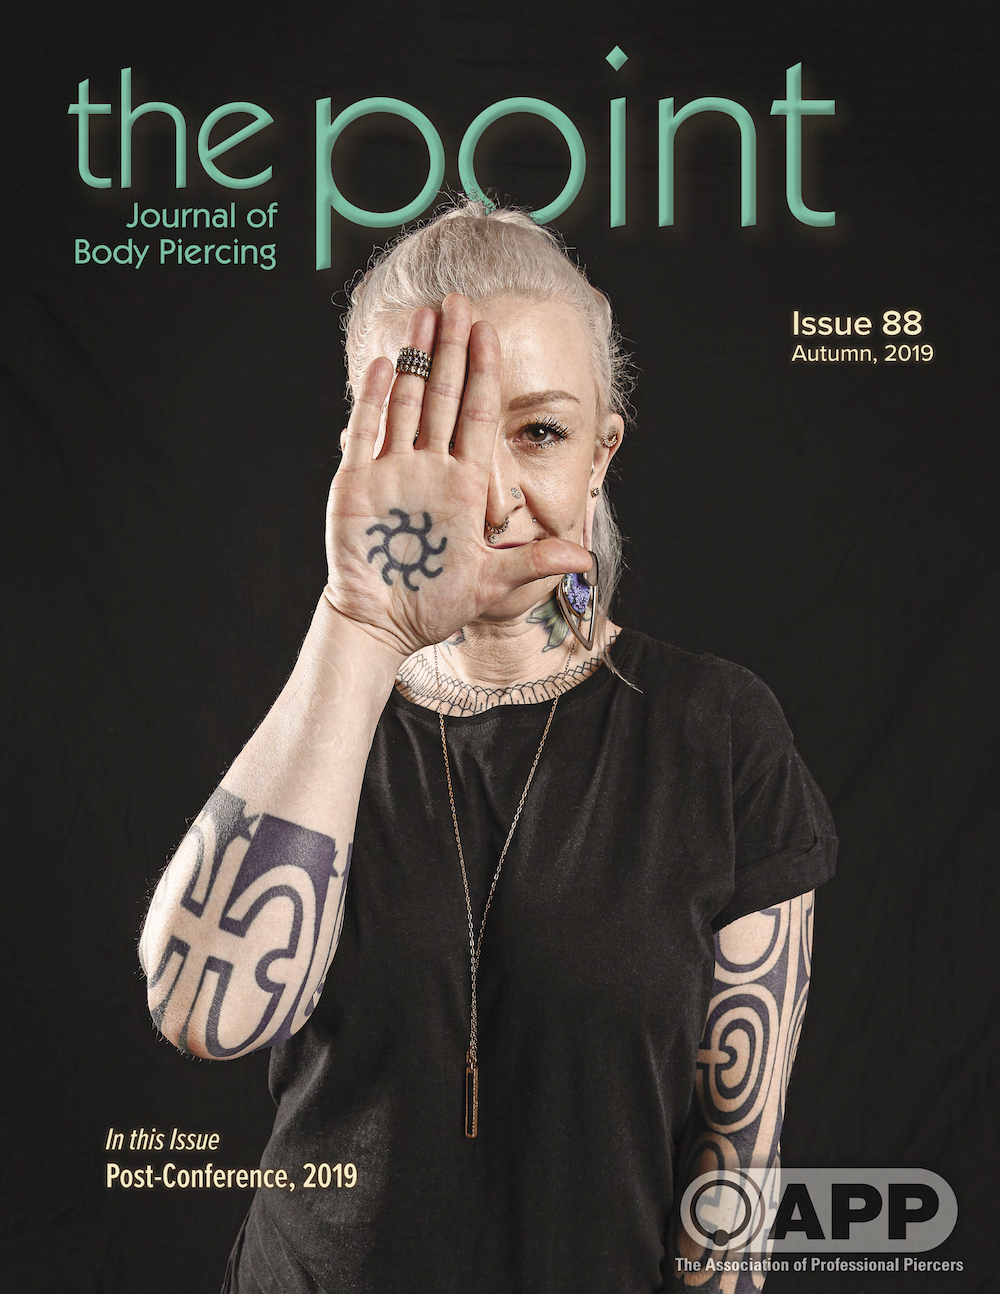 The Point - Journal of Body Piercing: Issue 88